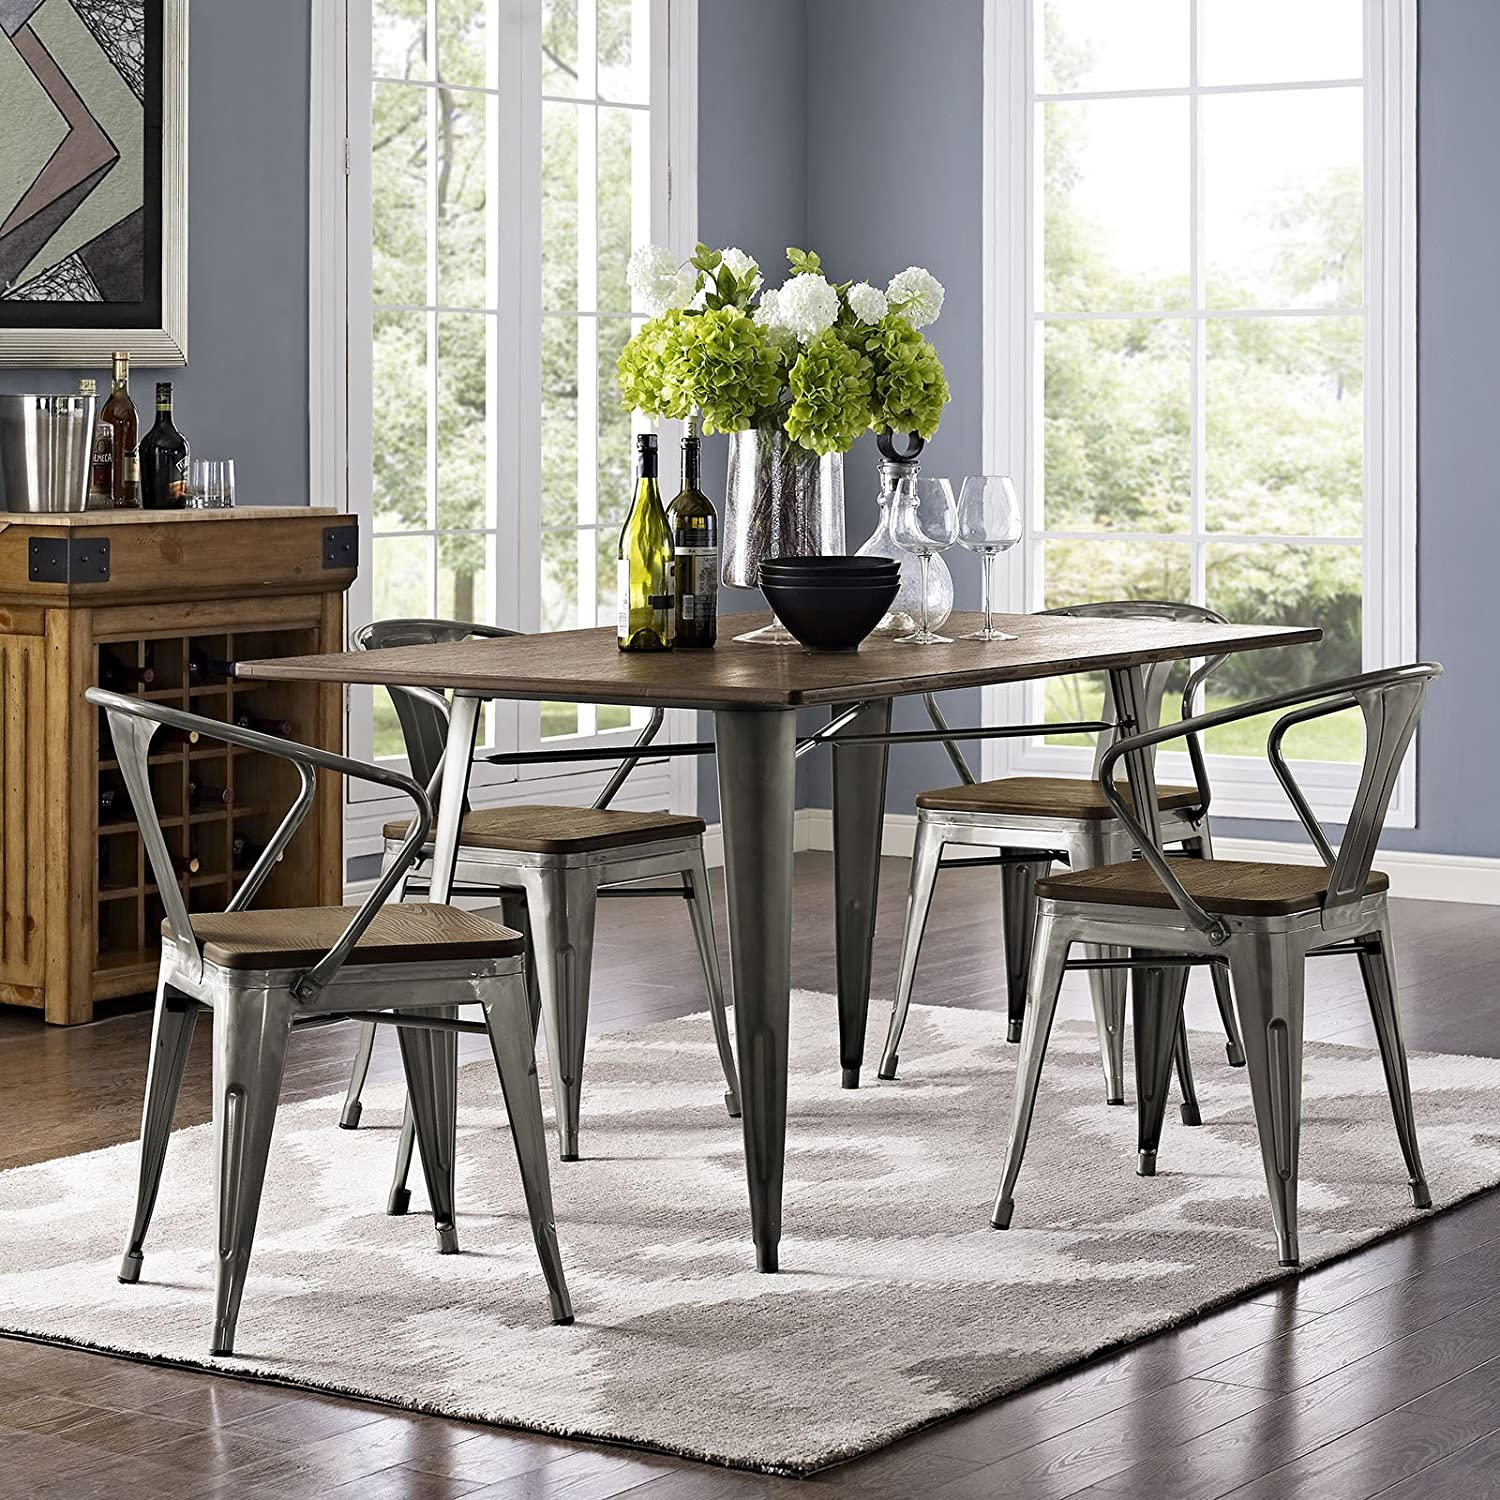 industrial-farmhouse-dining-table-metal-legs-tolix-style-table-unique-bamboo-tabletop-affordable-rustic-furniture